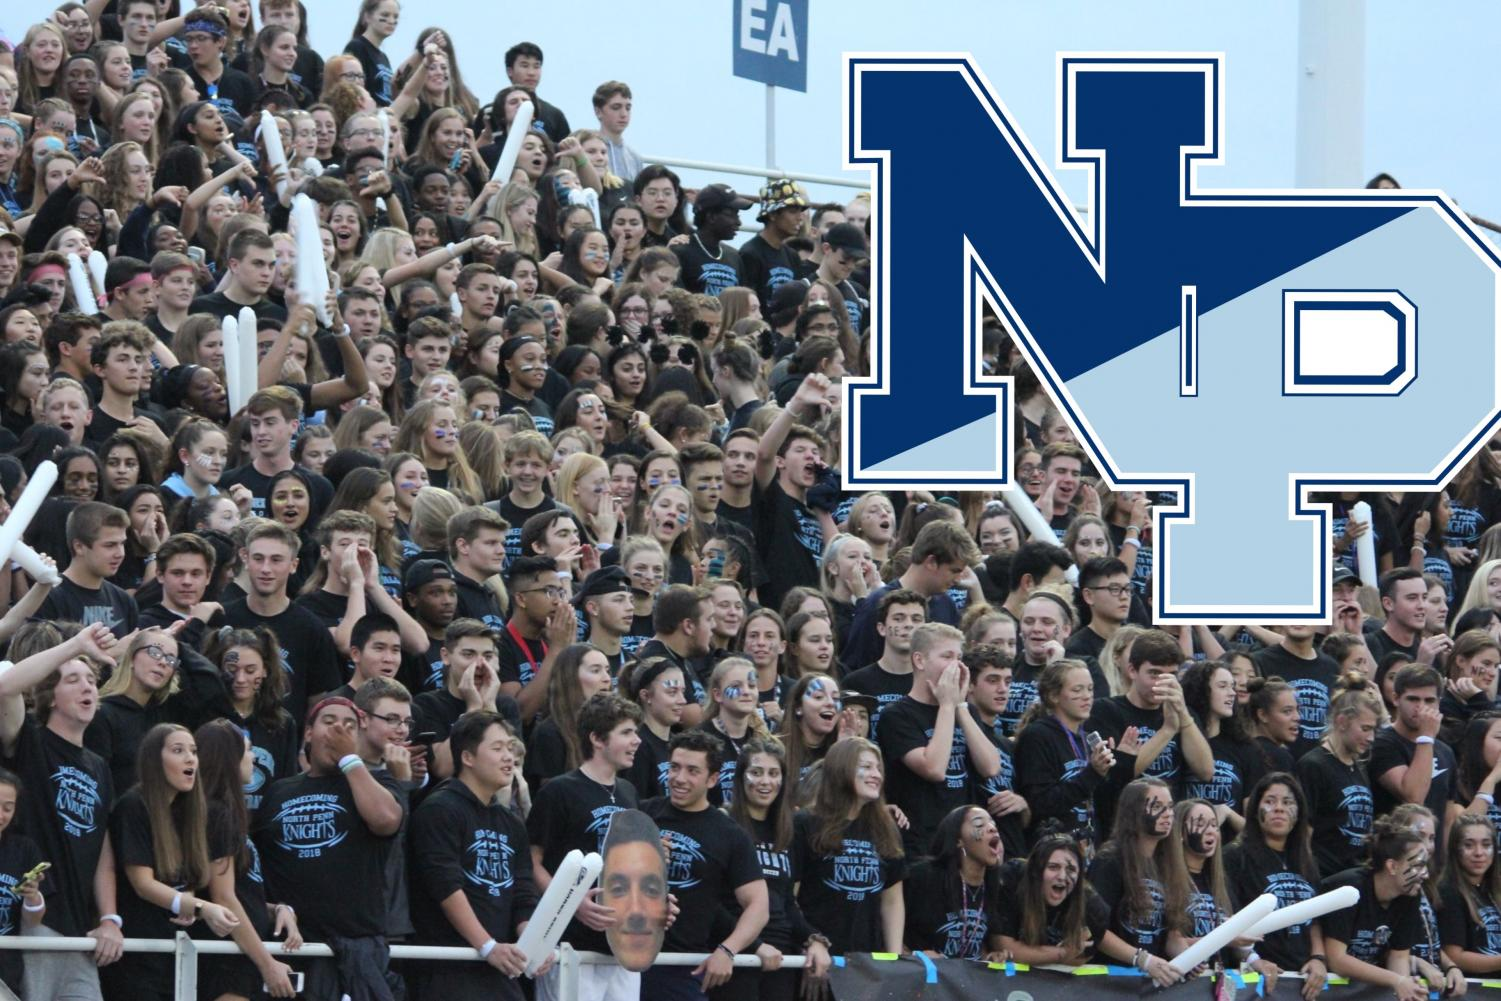 North Penn High School students fill the student section at the Homecoming football game.